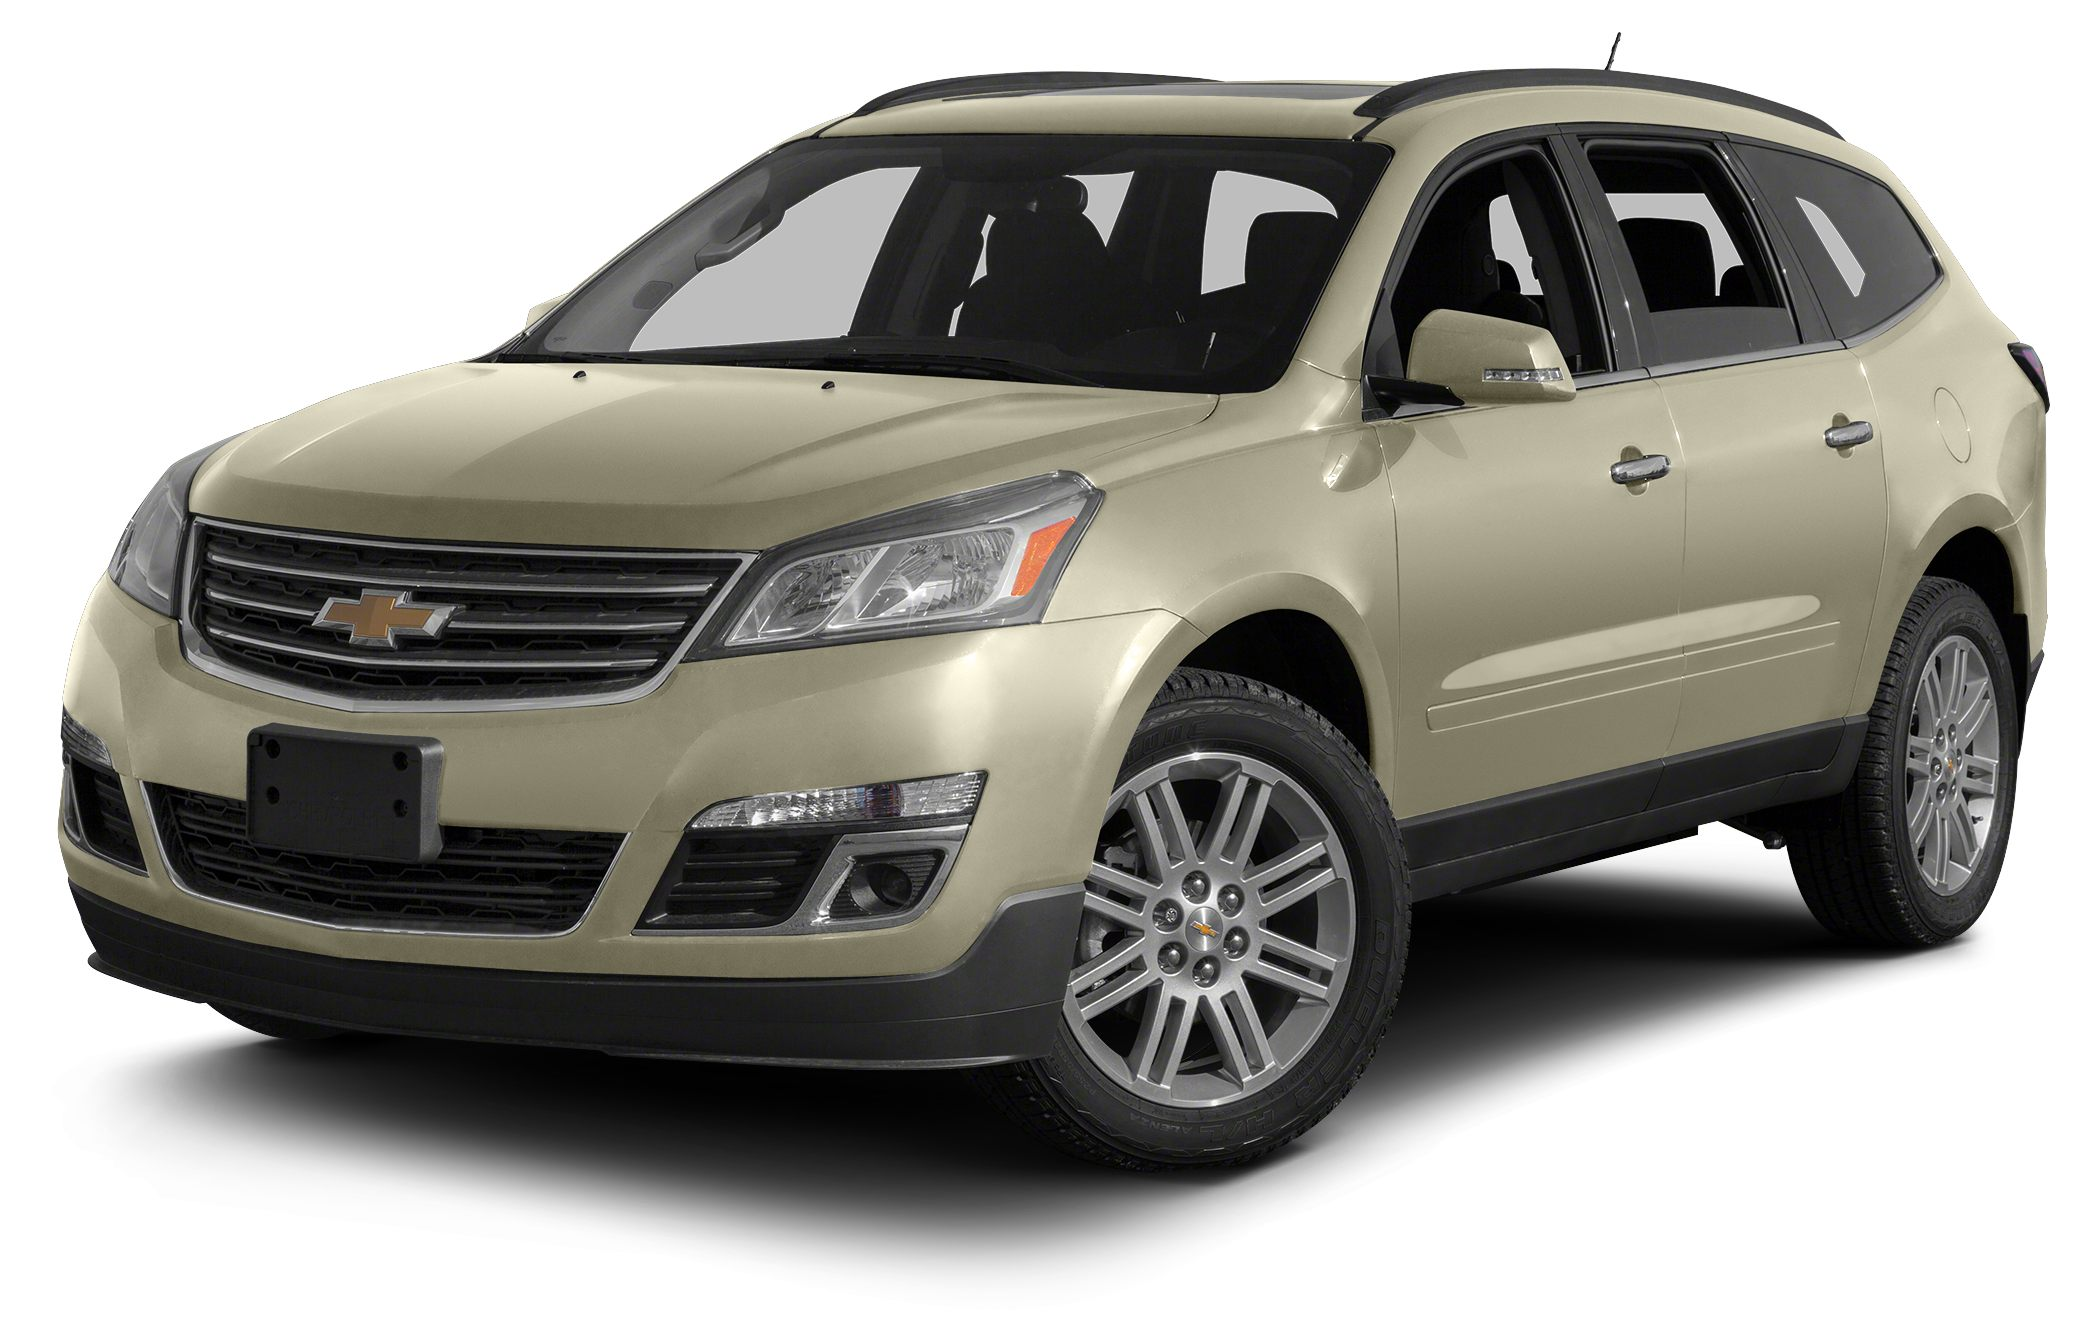 2013 Chevrolet Traverse 2LT For the avid golfer and sports enthusiast this 2013 Chevrolet Traverse